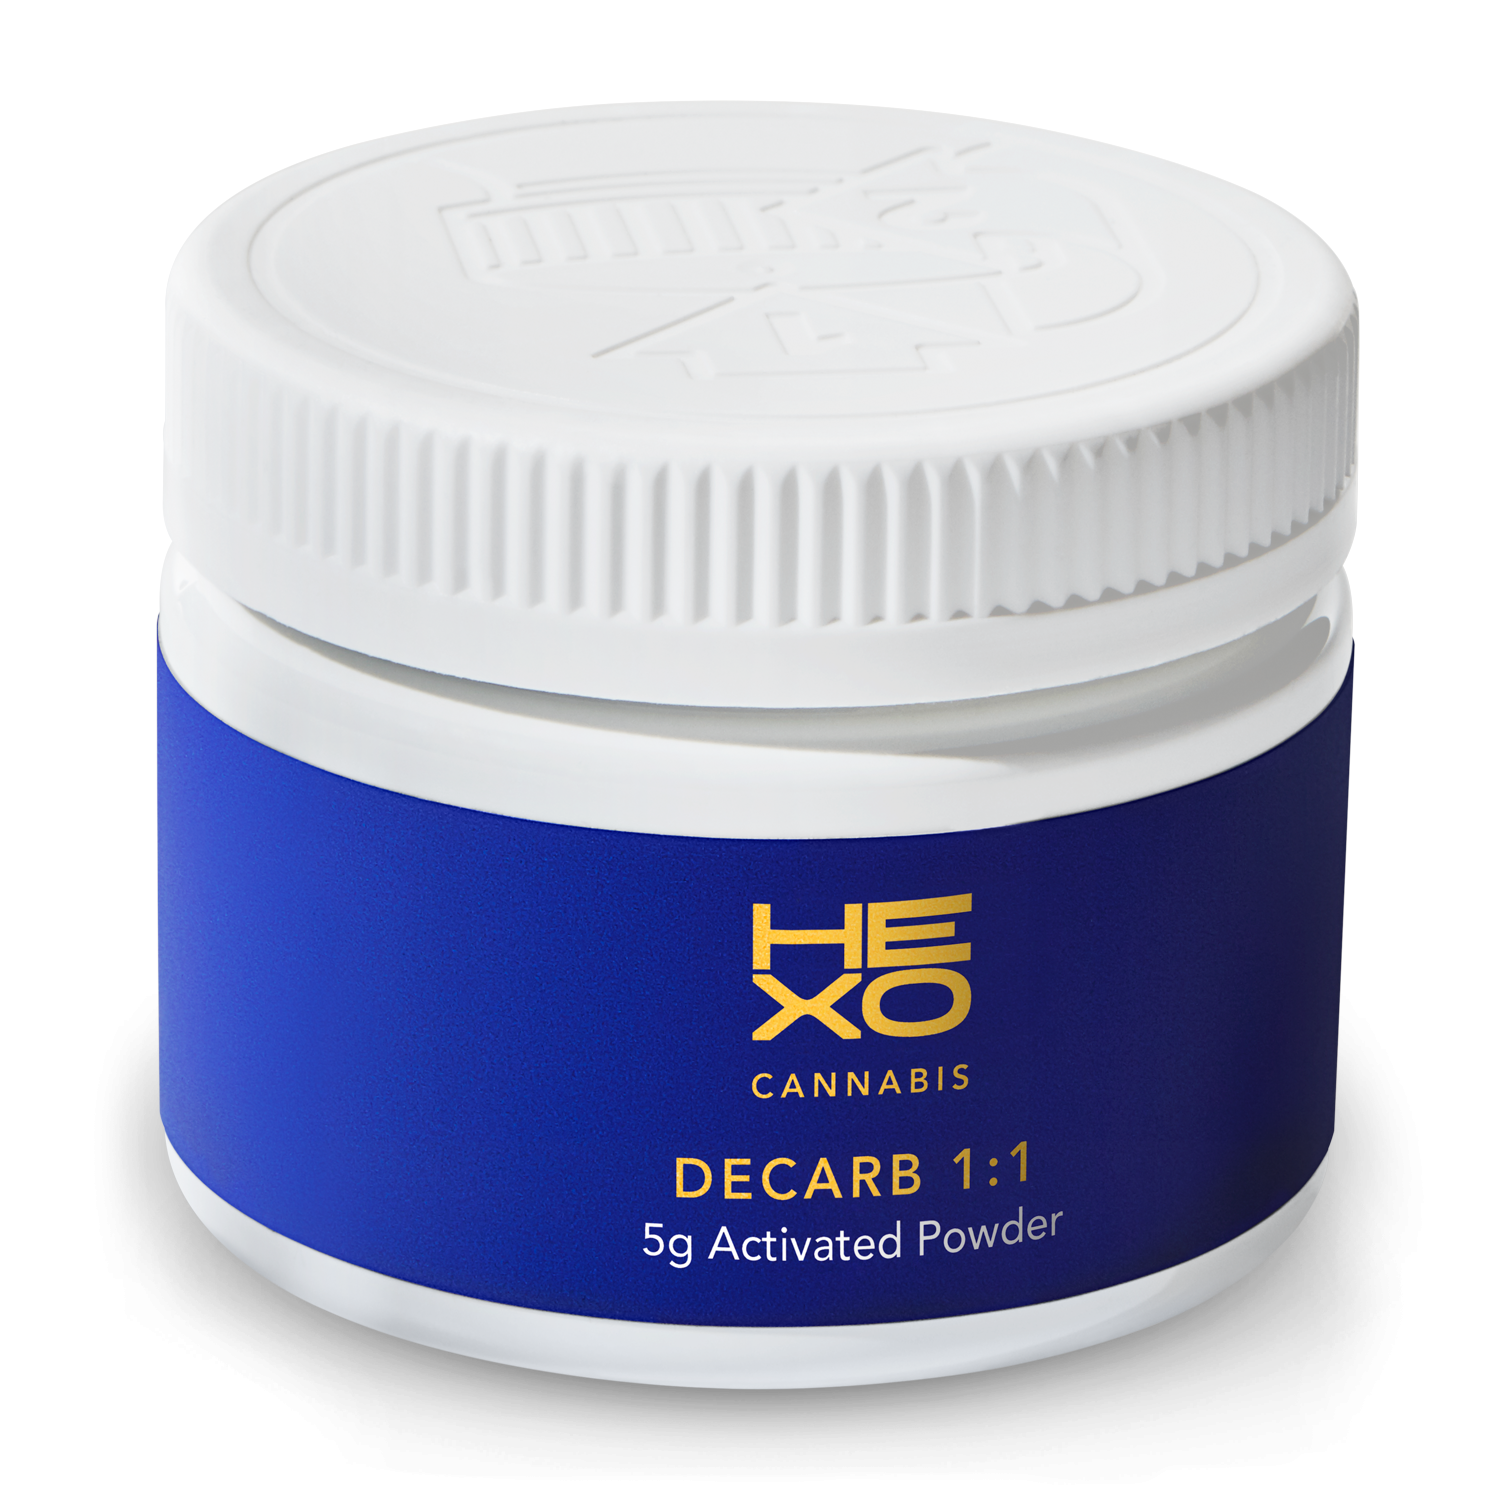 Hexo Decarb Product